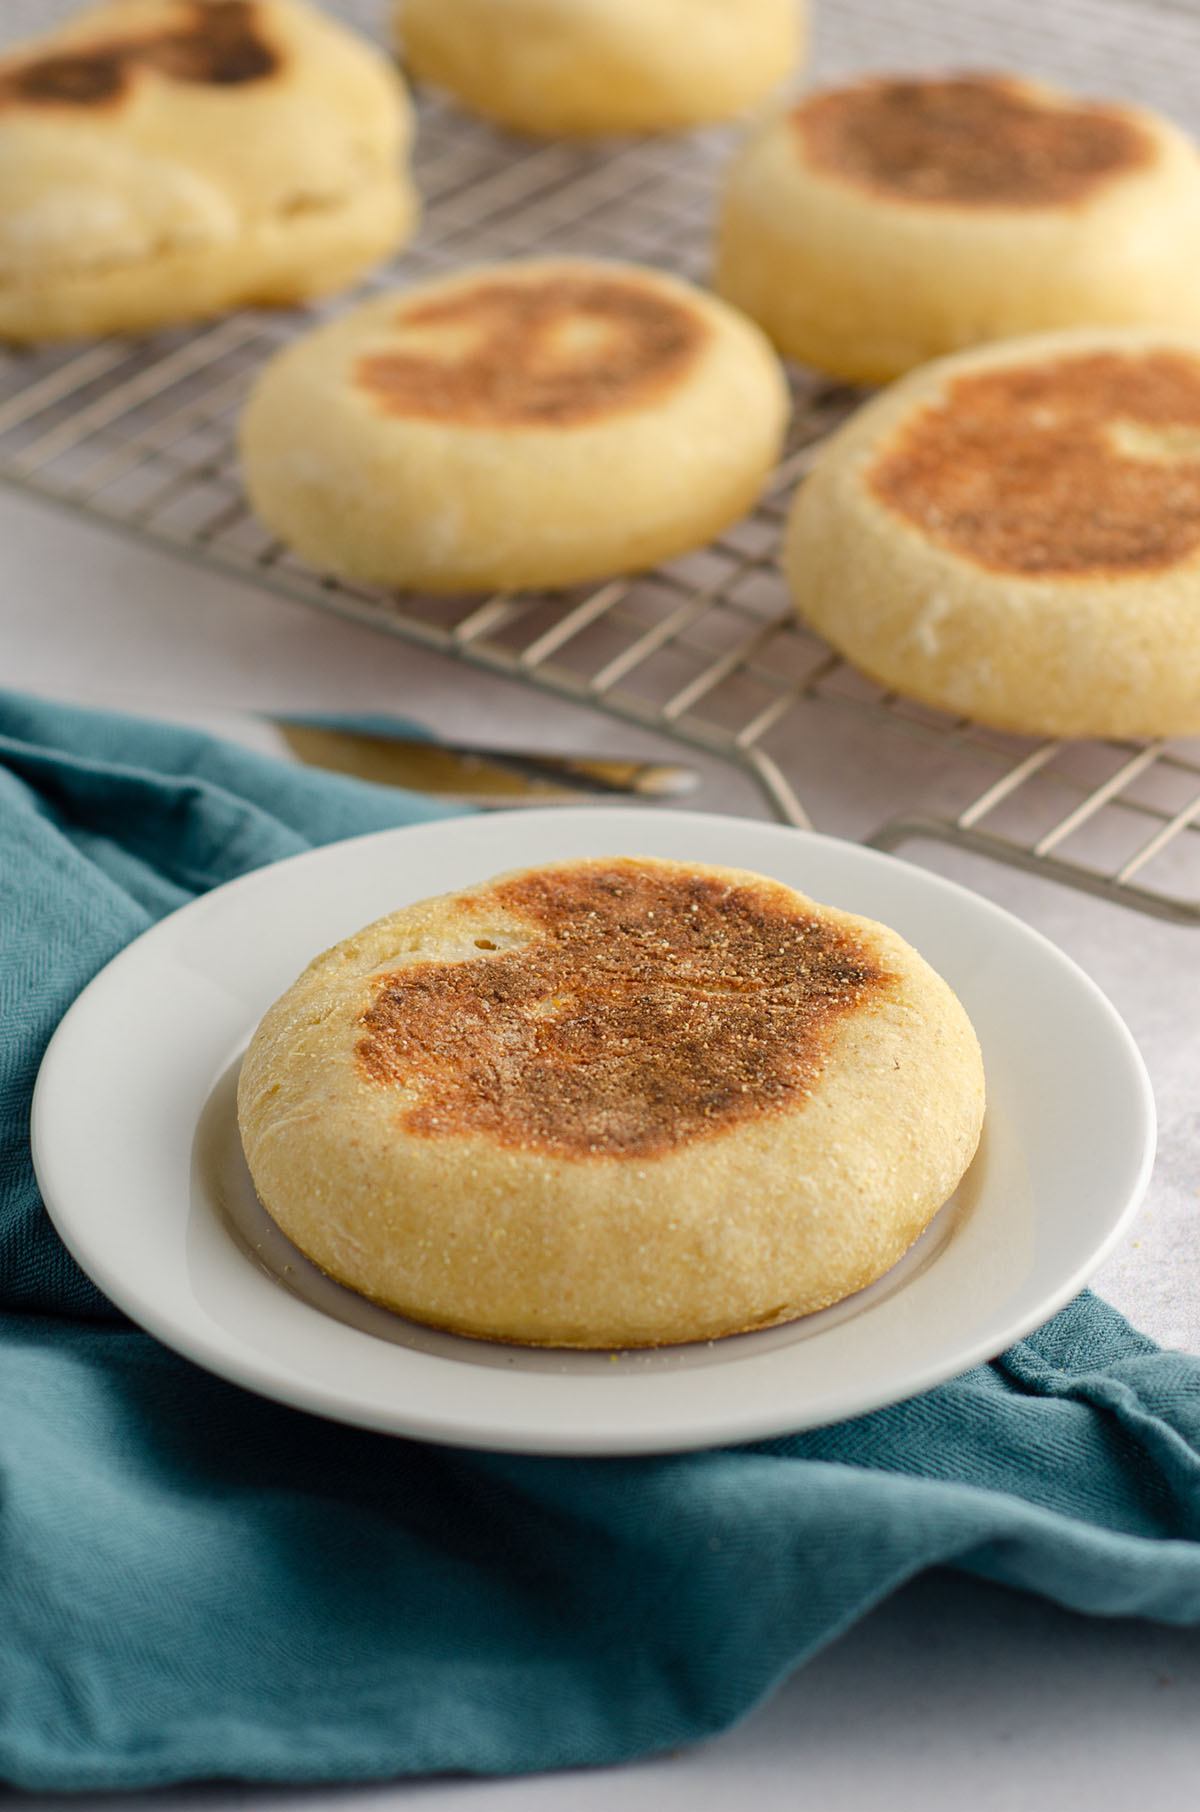 sourdough english muffins on a cooling rack in the background of a sourdough english muffin sitting on a white plate